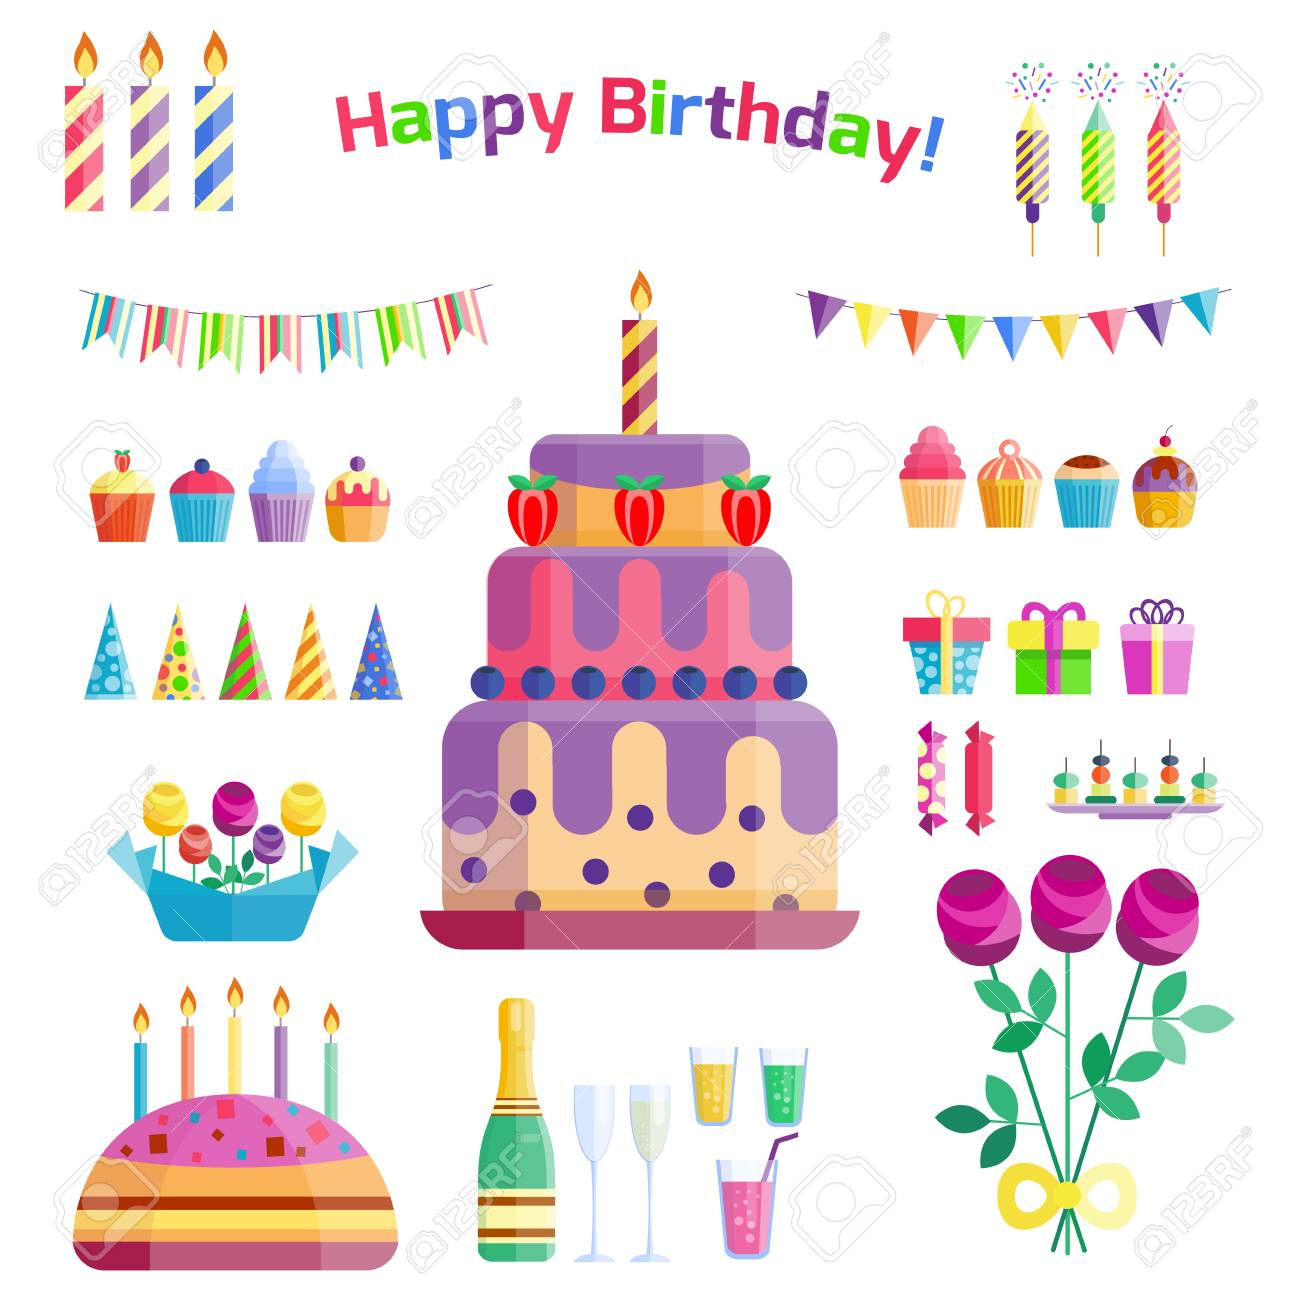 Party Icons Celebration Happy Birthday Surprise Decoration Cocktail Royalty Free Cliparts Vectors And Stock Illustration Image 76685787